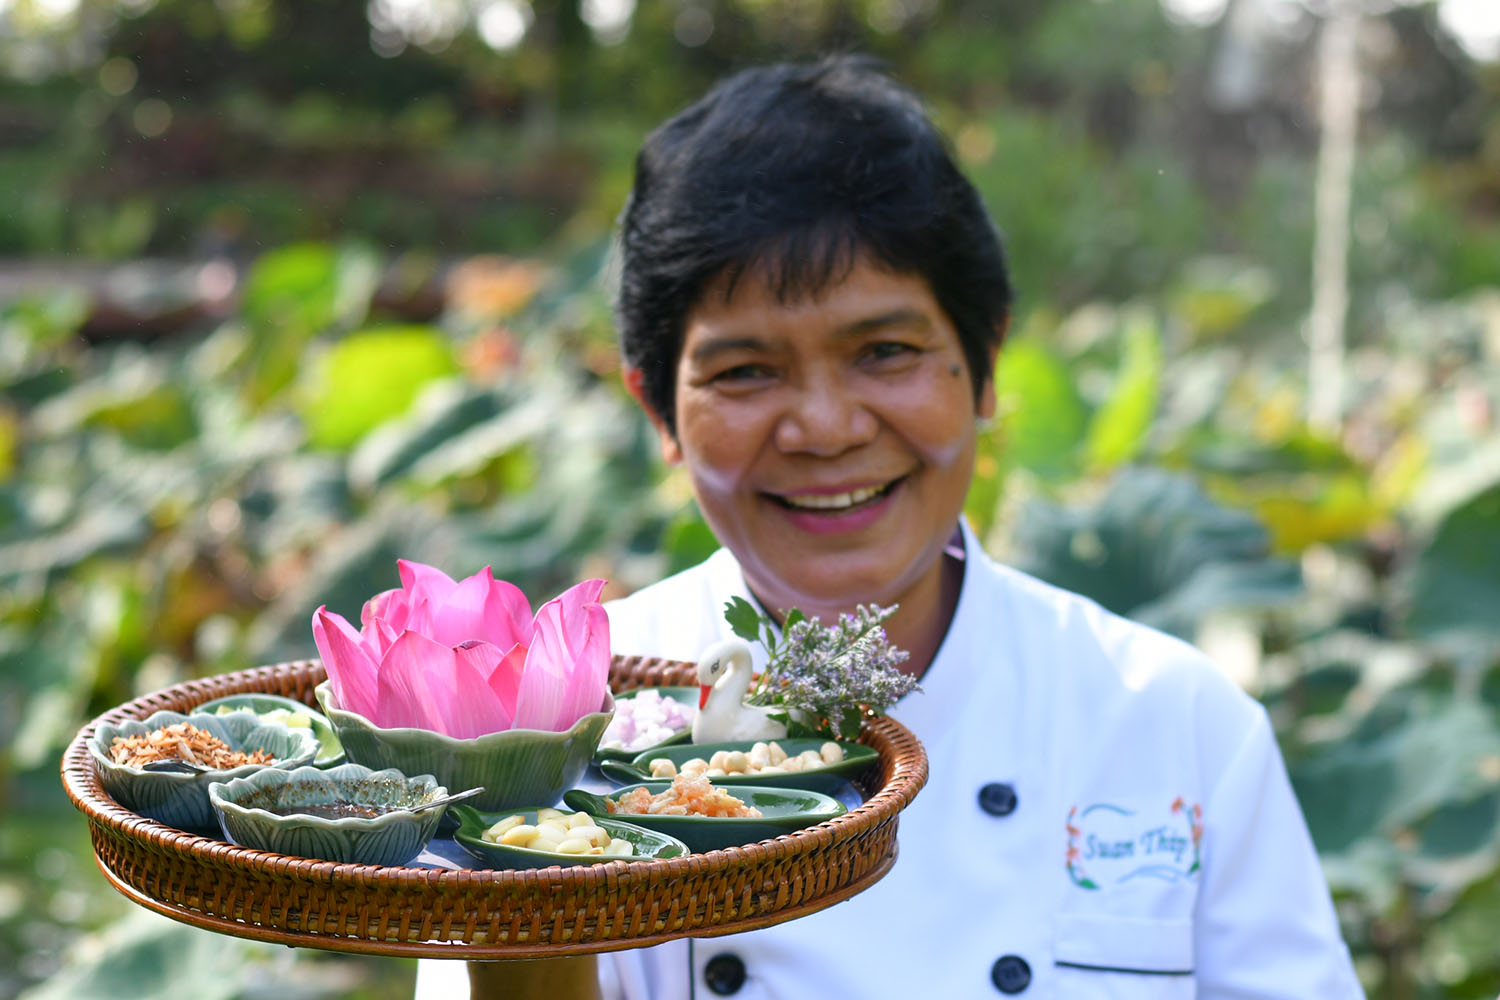 Banyen Ruangsantheia holds a tray of Lotus Wraps in November 2018, soon after she won her first Michelin star.